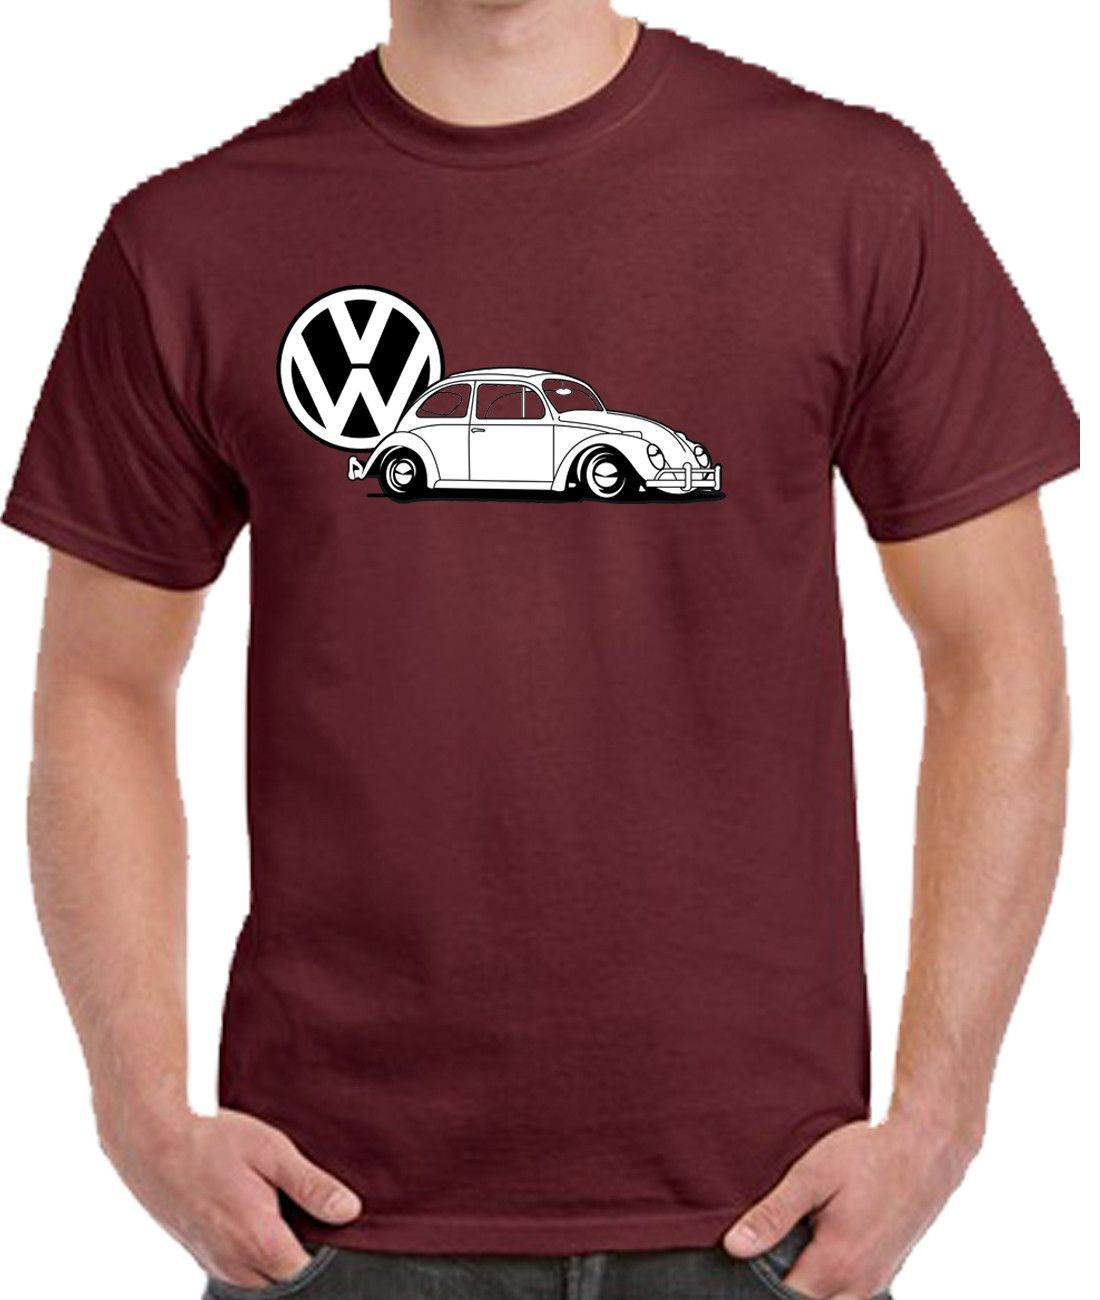 Vw bug t shirt